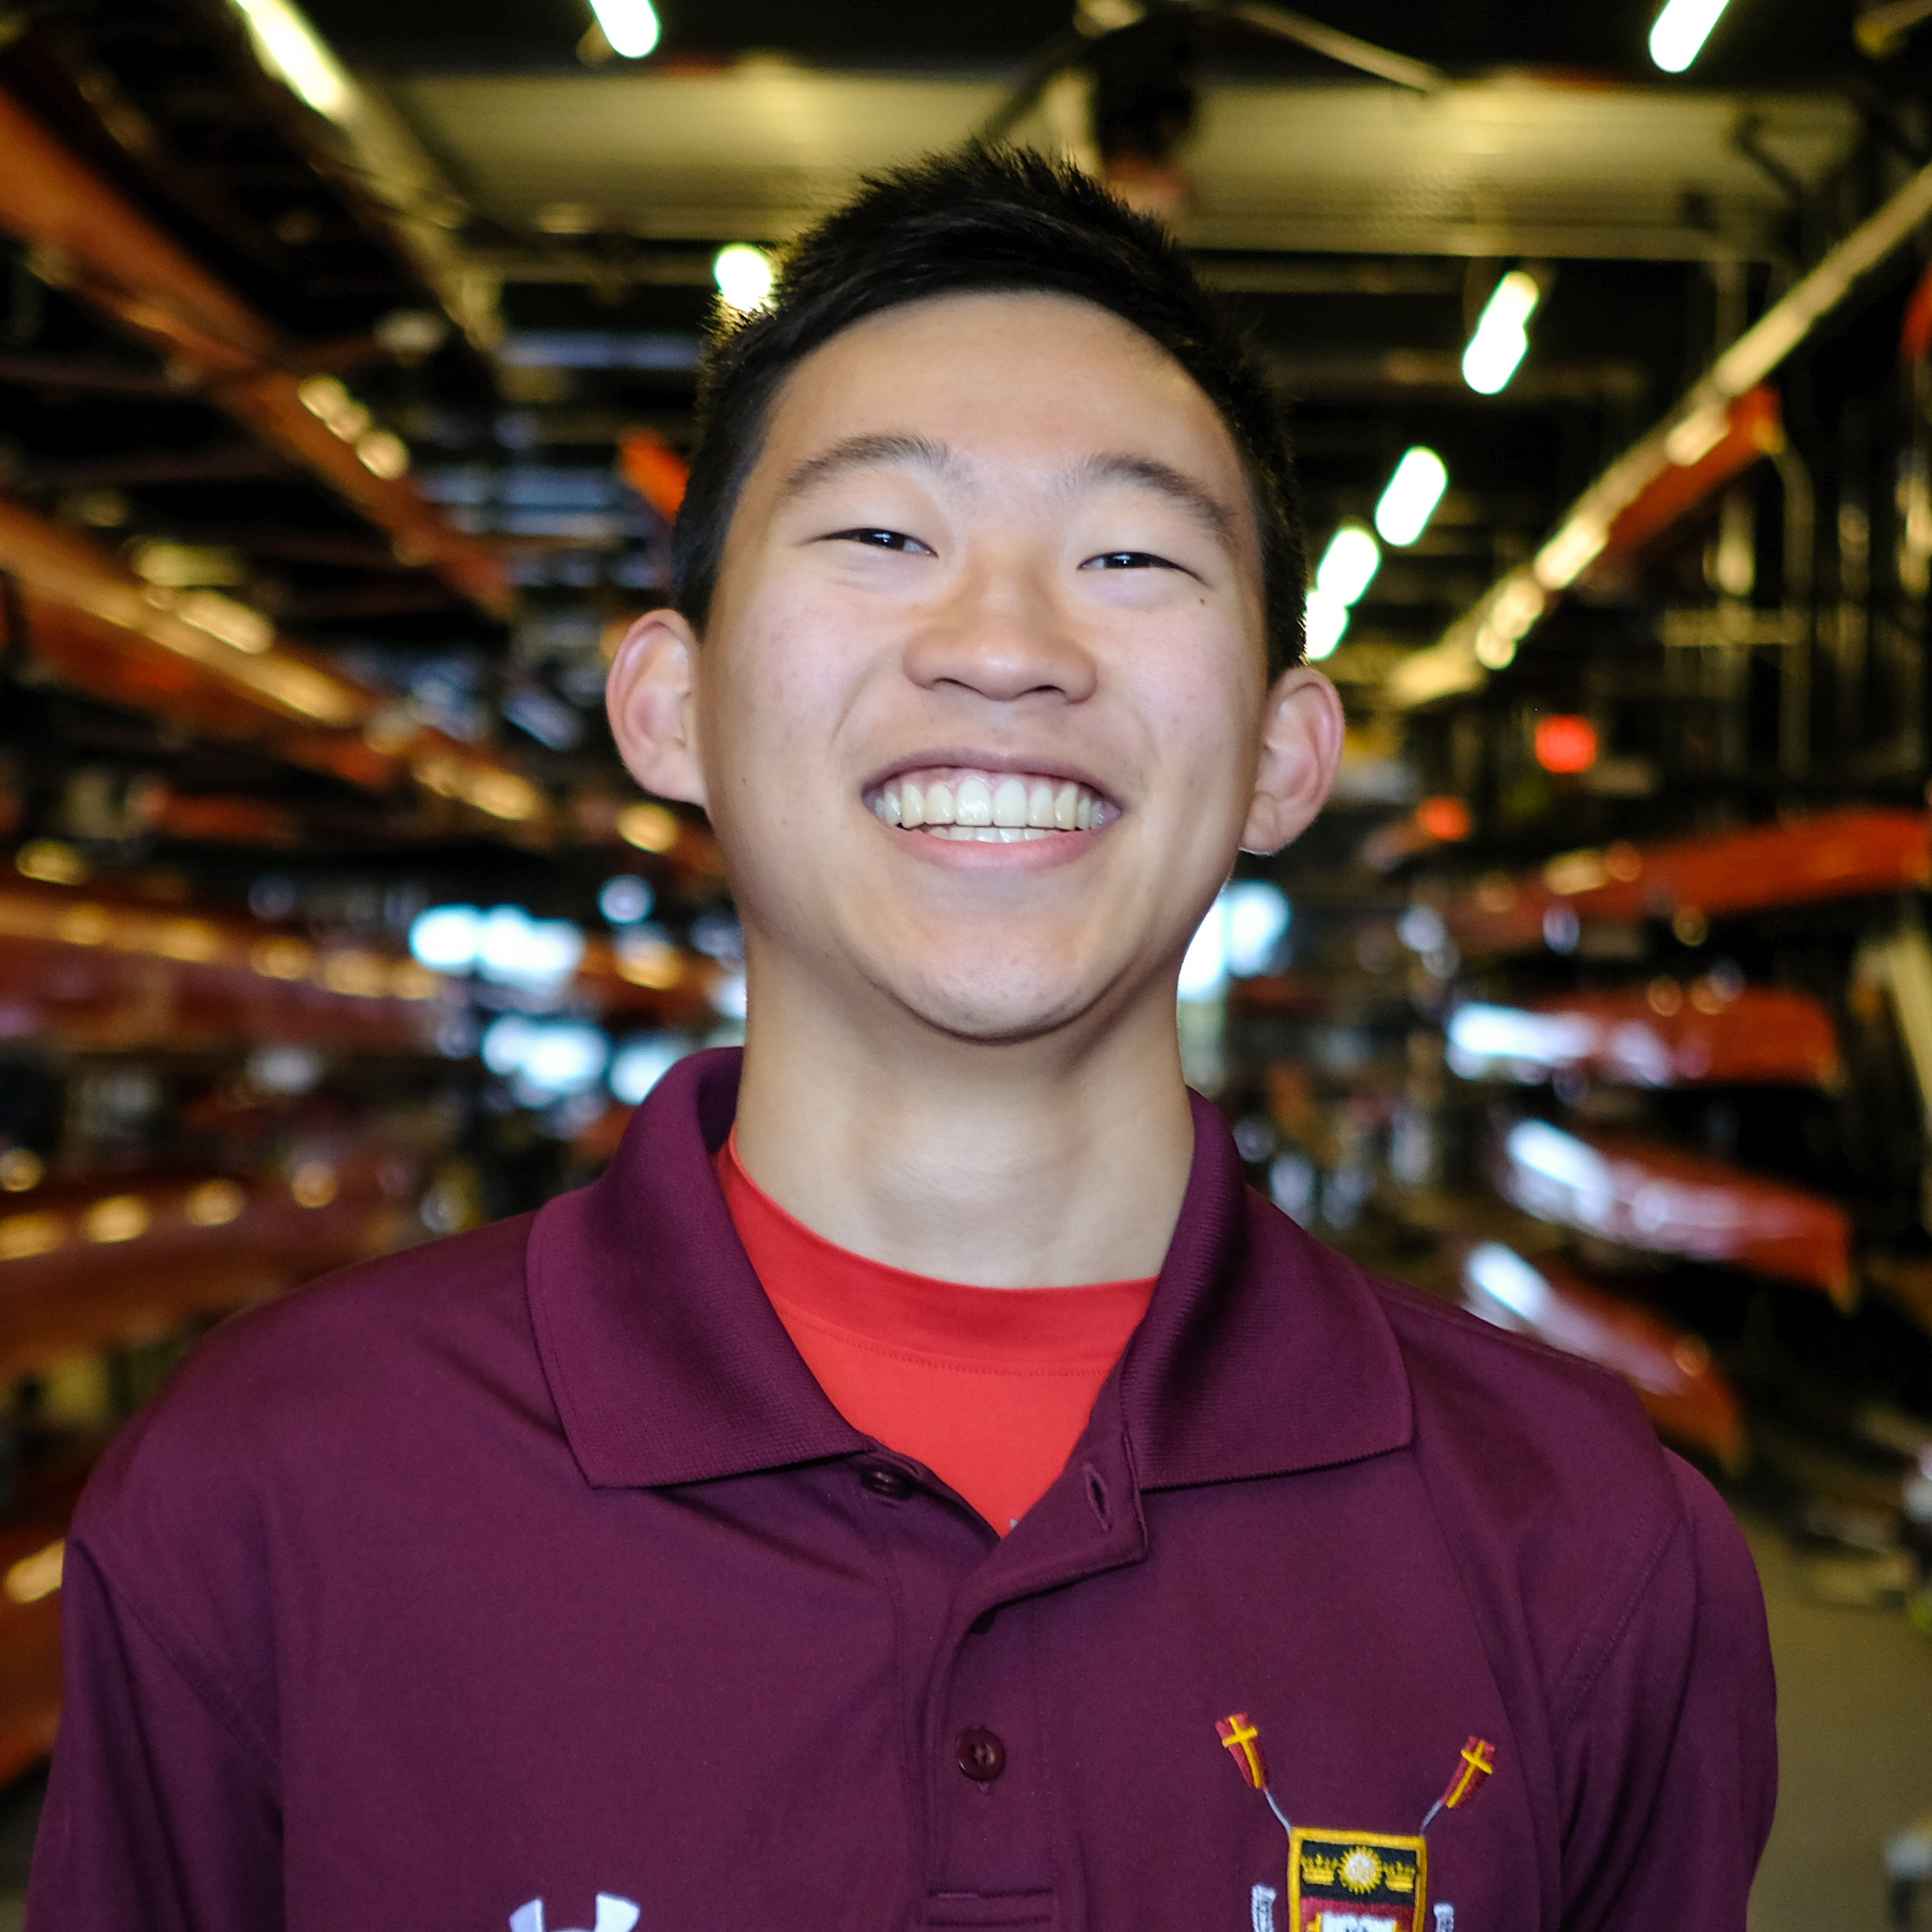 Justin Junichi-Lian Li - Hometown: New York, NYClass: 2022Bio: Justin began coxing at St. Paul's in Concord, NH, where he won bronze at the 2018 NEIRAs in the 2V8. As a freshman at BC, Justin has coxed the Collegiate 4+ at the HOCR, the 2V8 at the Crew Classic, and the Frosh 8. Justin is a Political Science major in the college of Arts and Sciences and is considering a finance minor in the Carroll School. In his free time, Justin likes drinking boba tea and watching hype viddies.